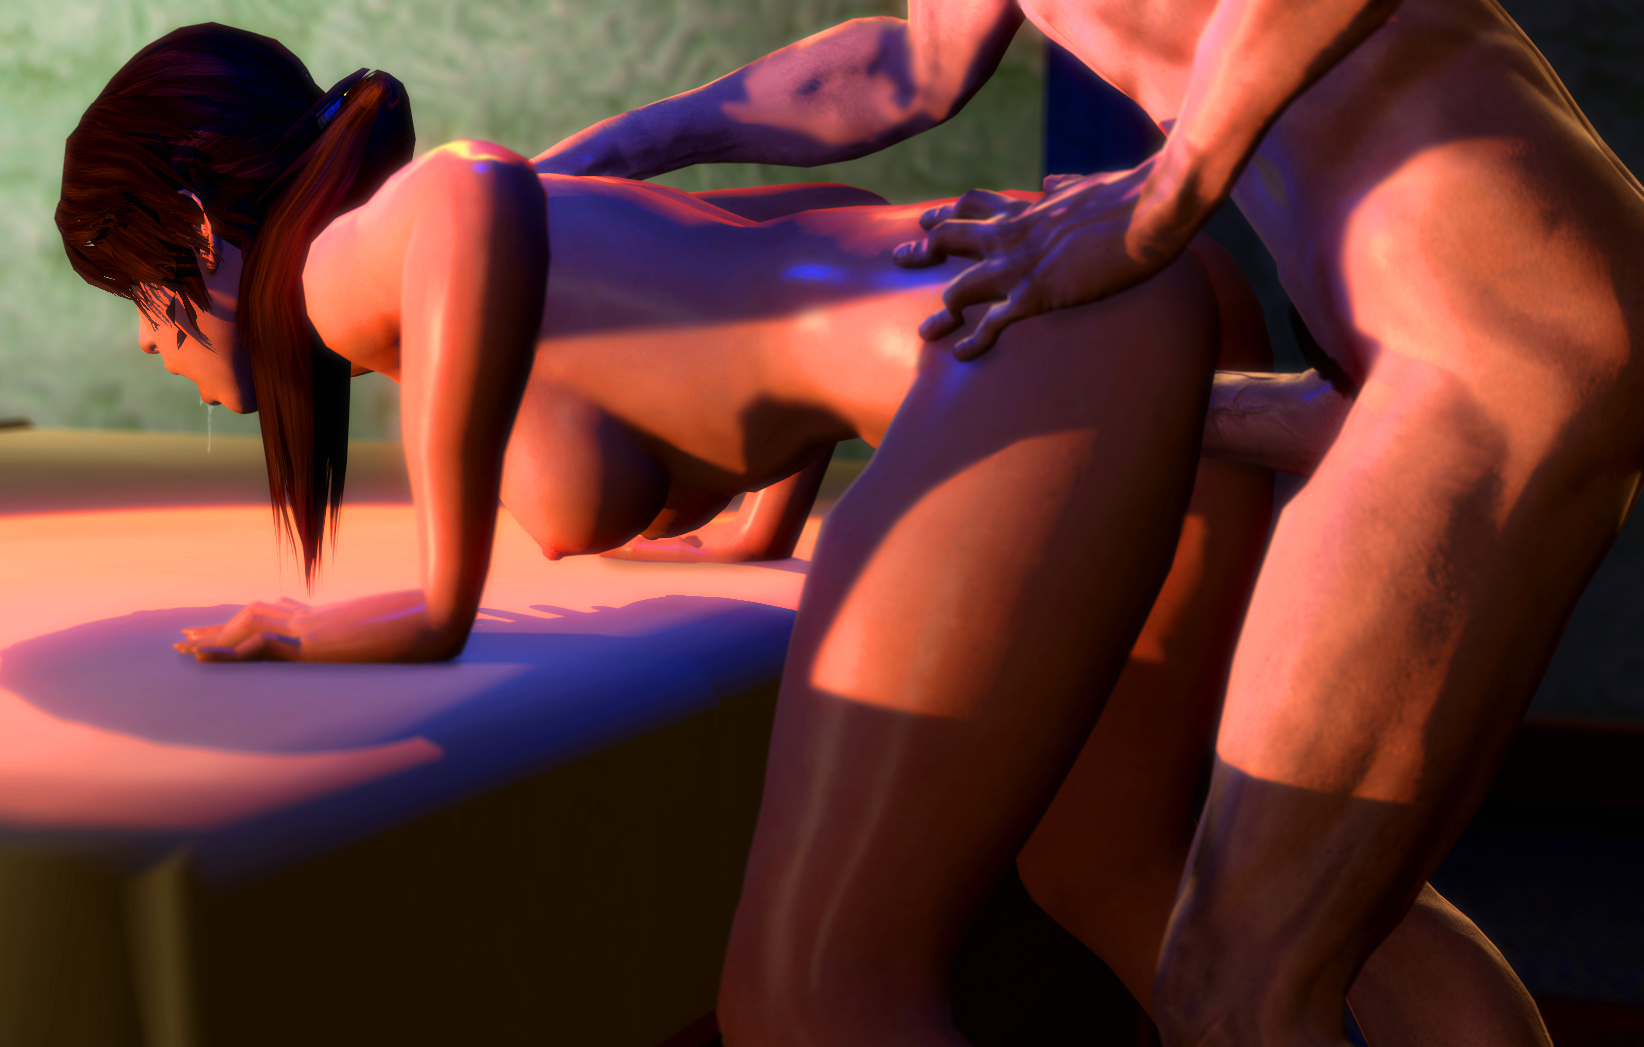 Lara croft no clothes mod uncensored exploited photo